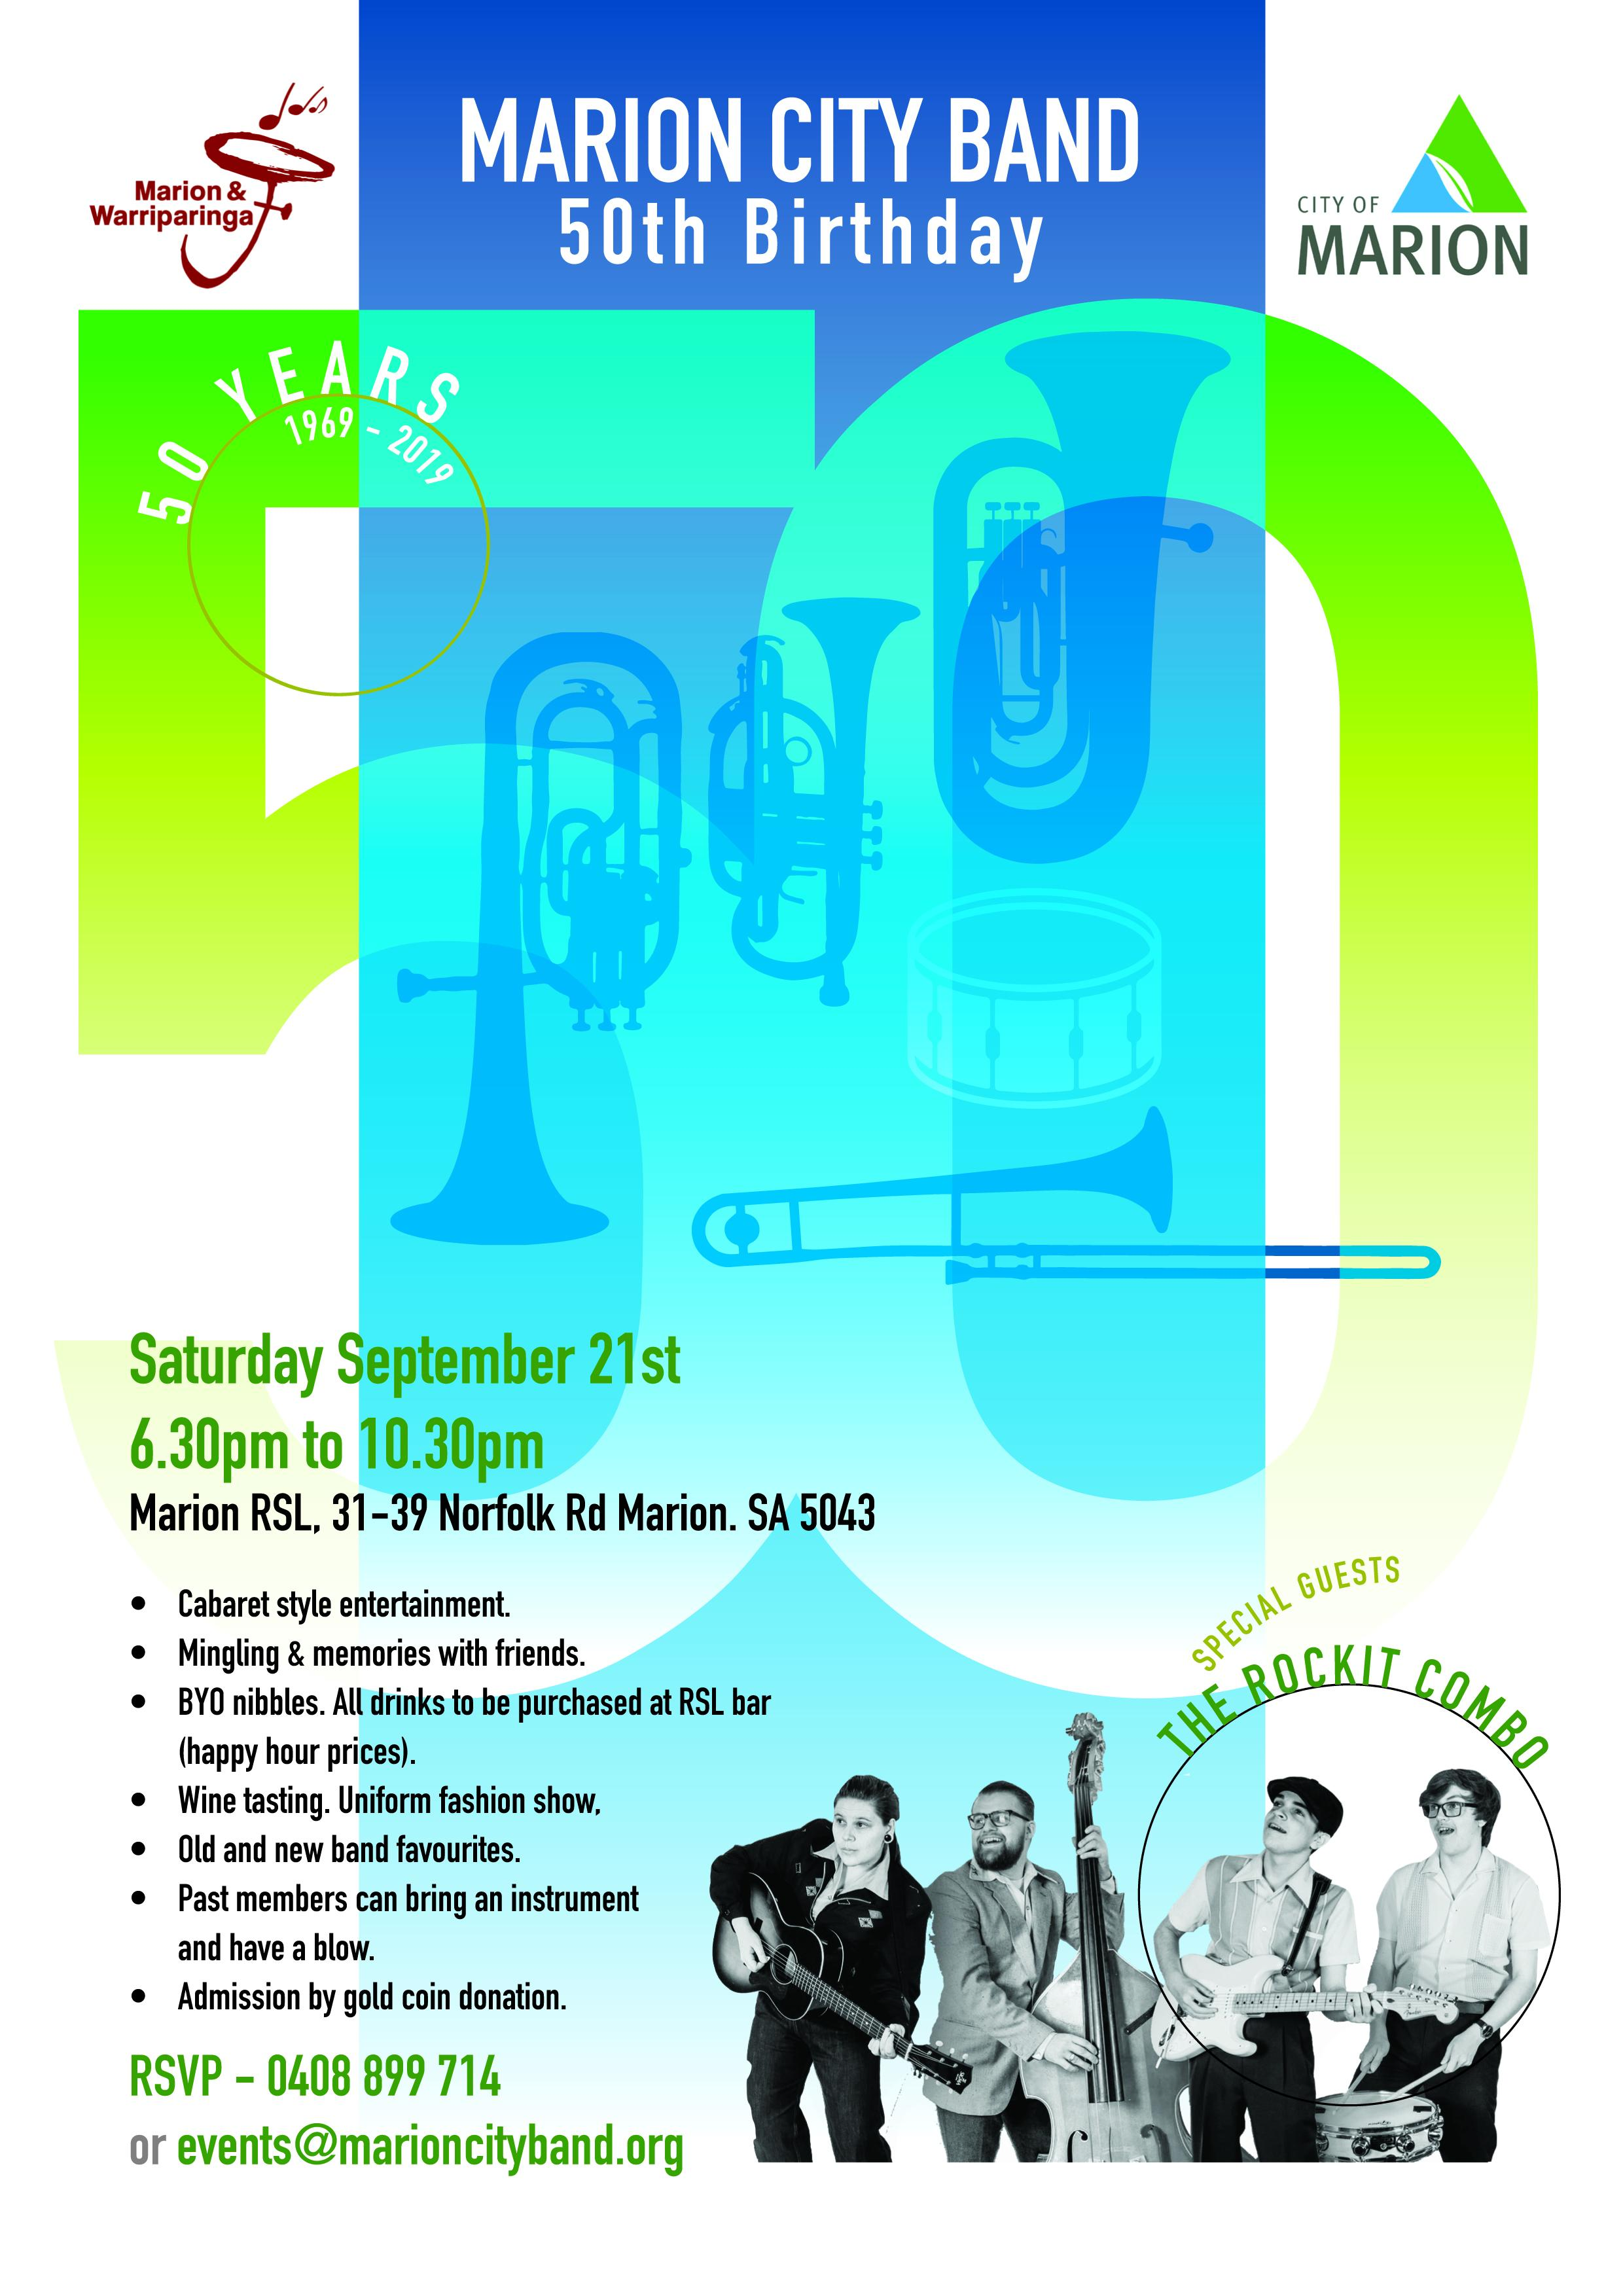 Marion City Band 50 Birthday - Saturday 21st September 6.30pm